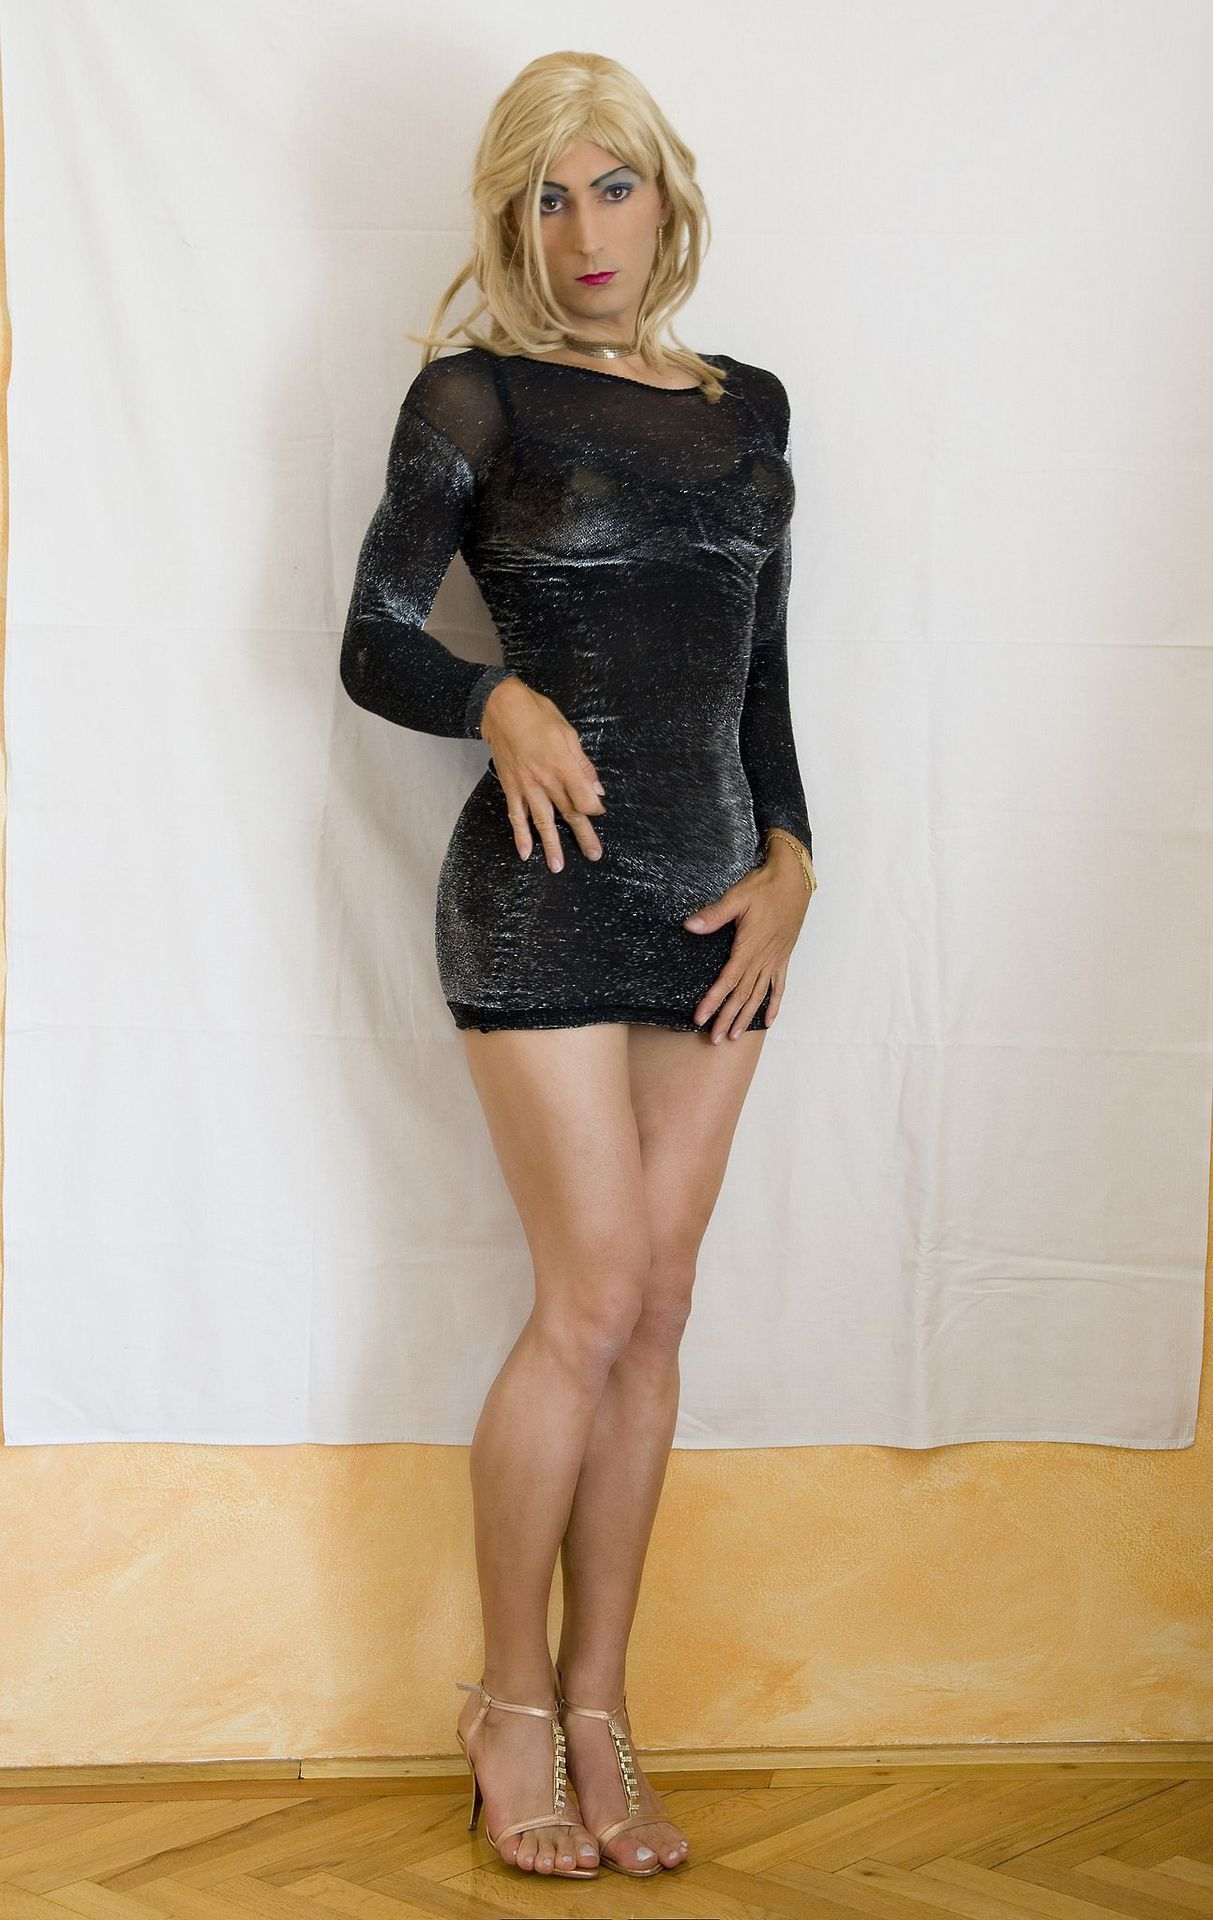 Beautiful shemale in a short dress gives you a great upskirt of her cock and ass